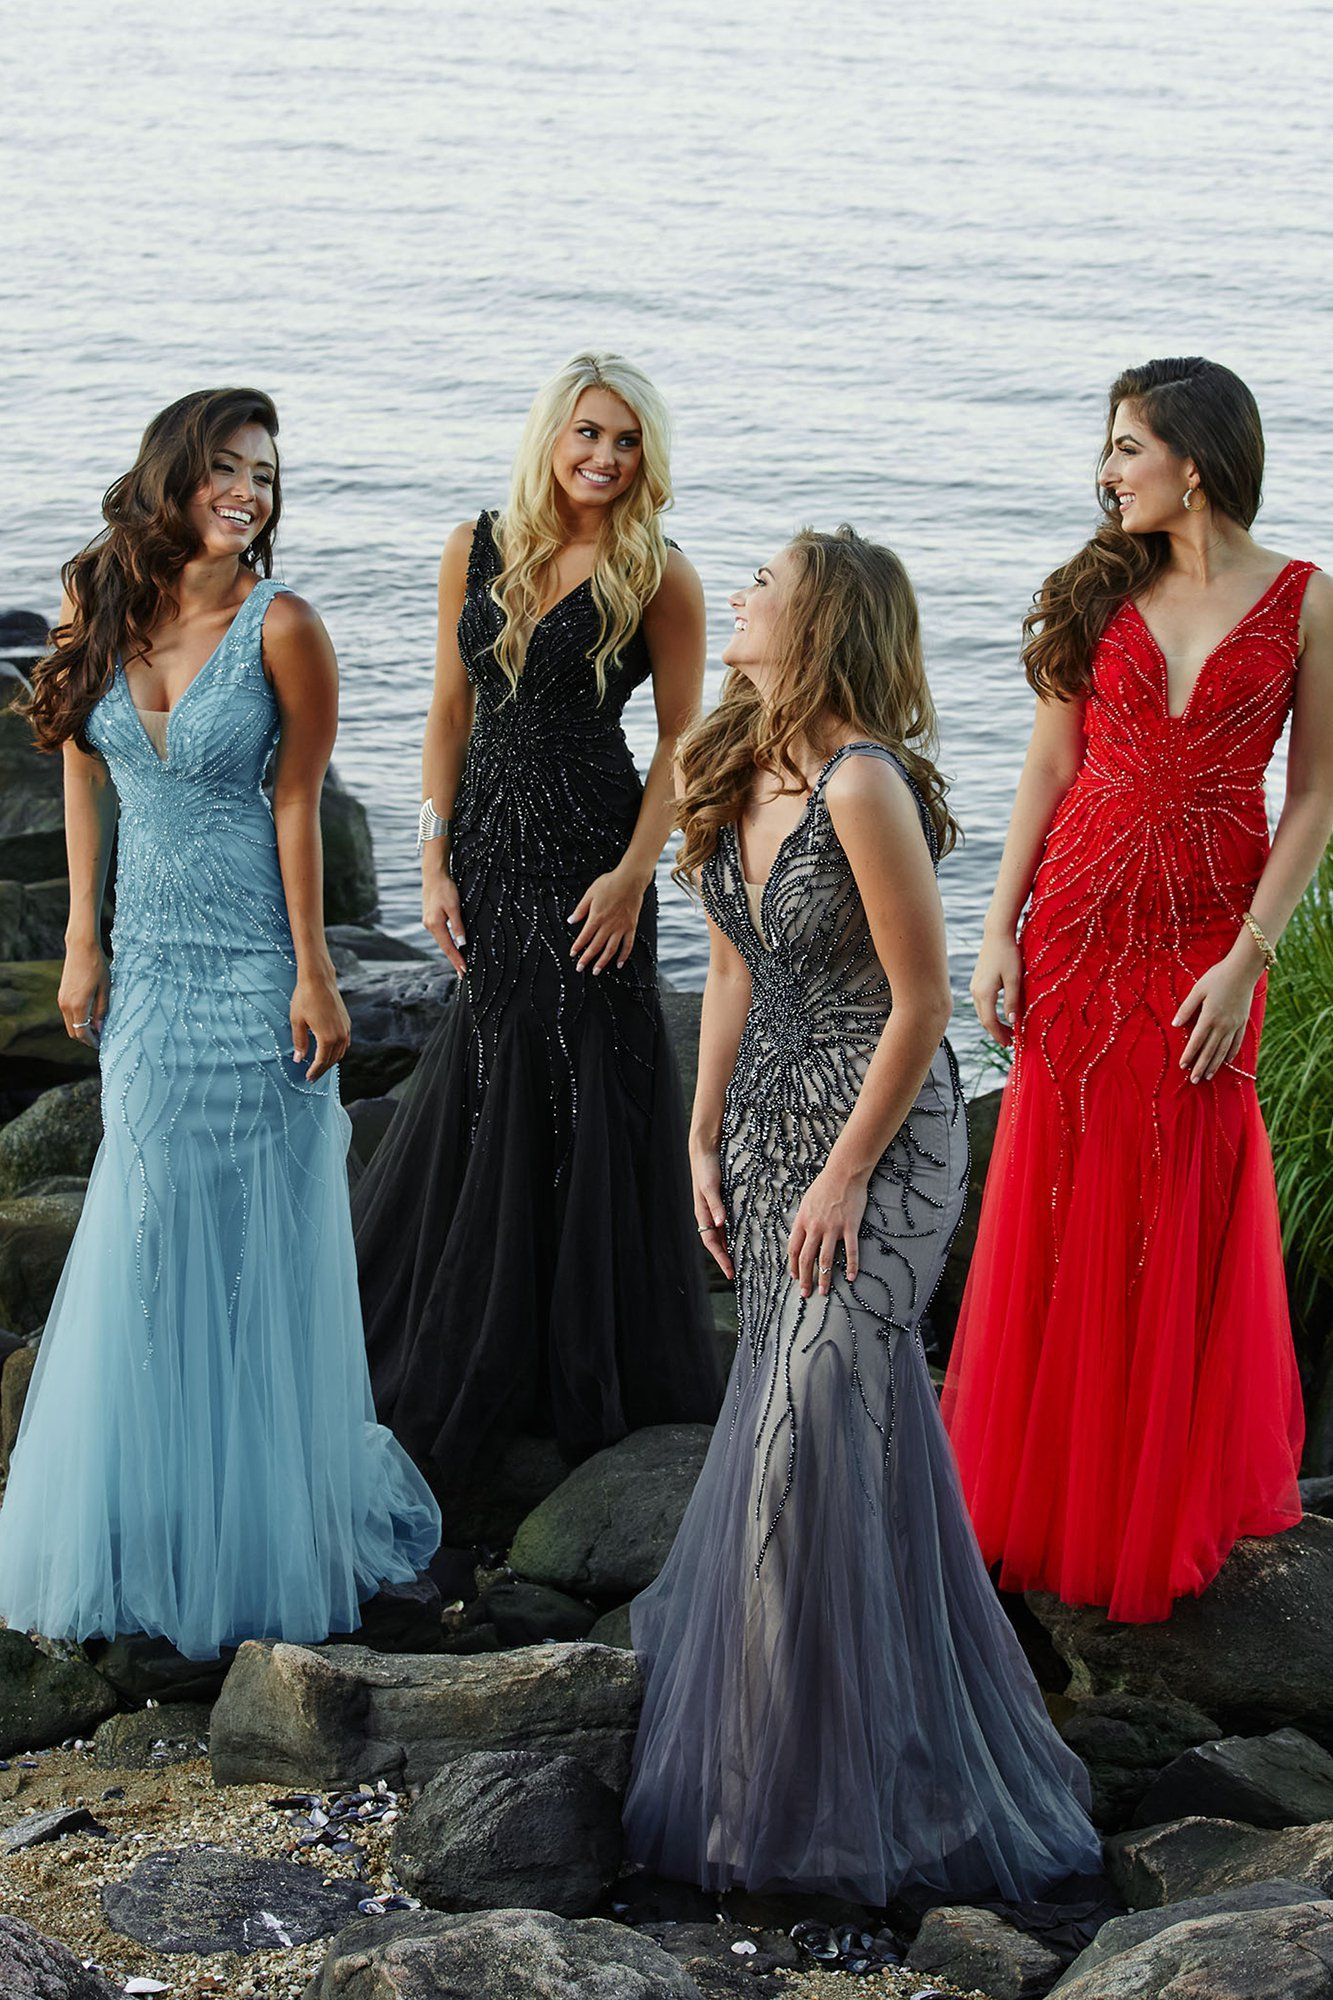 Navy Mermaid Prom Dress Prom Dresses Time to shine at PROM